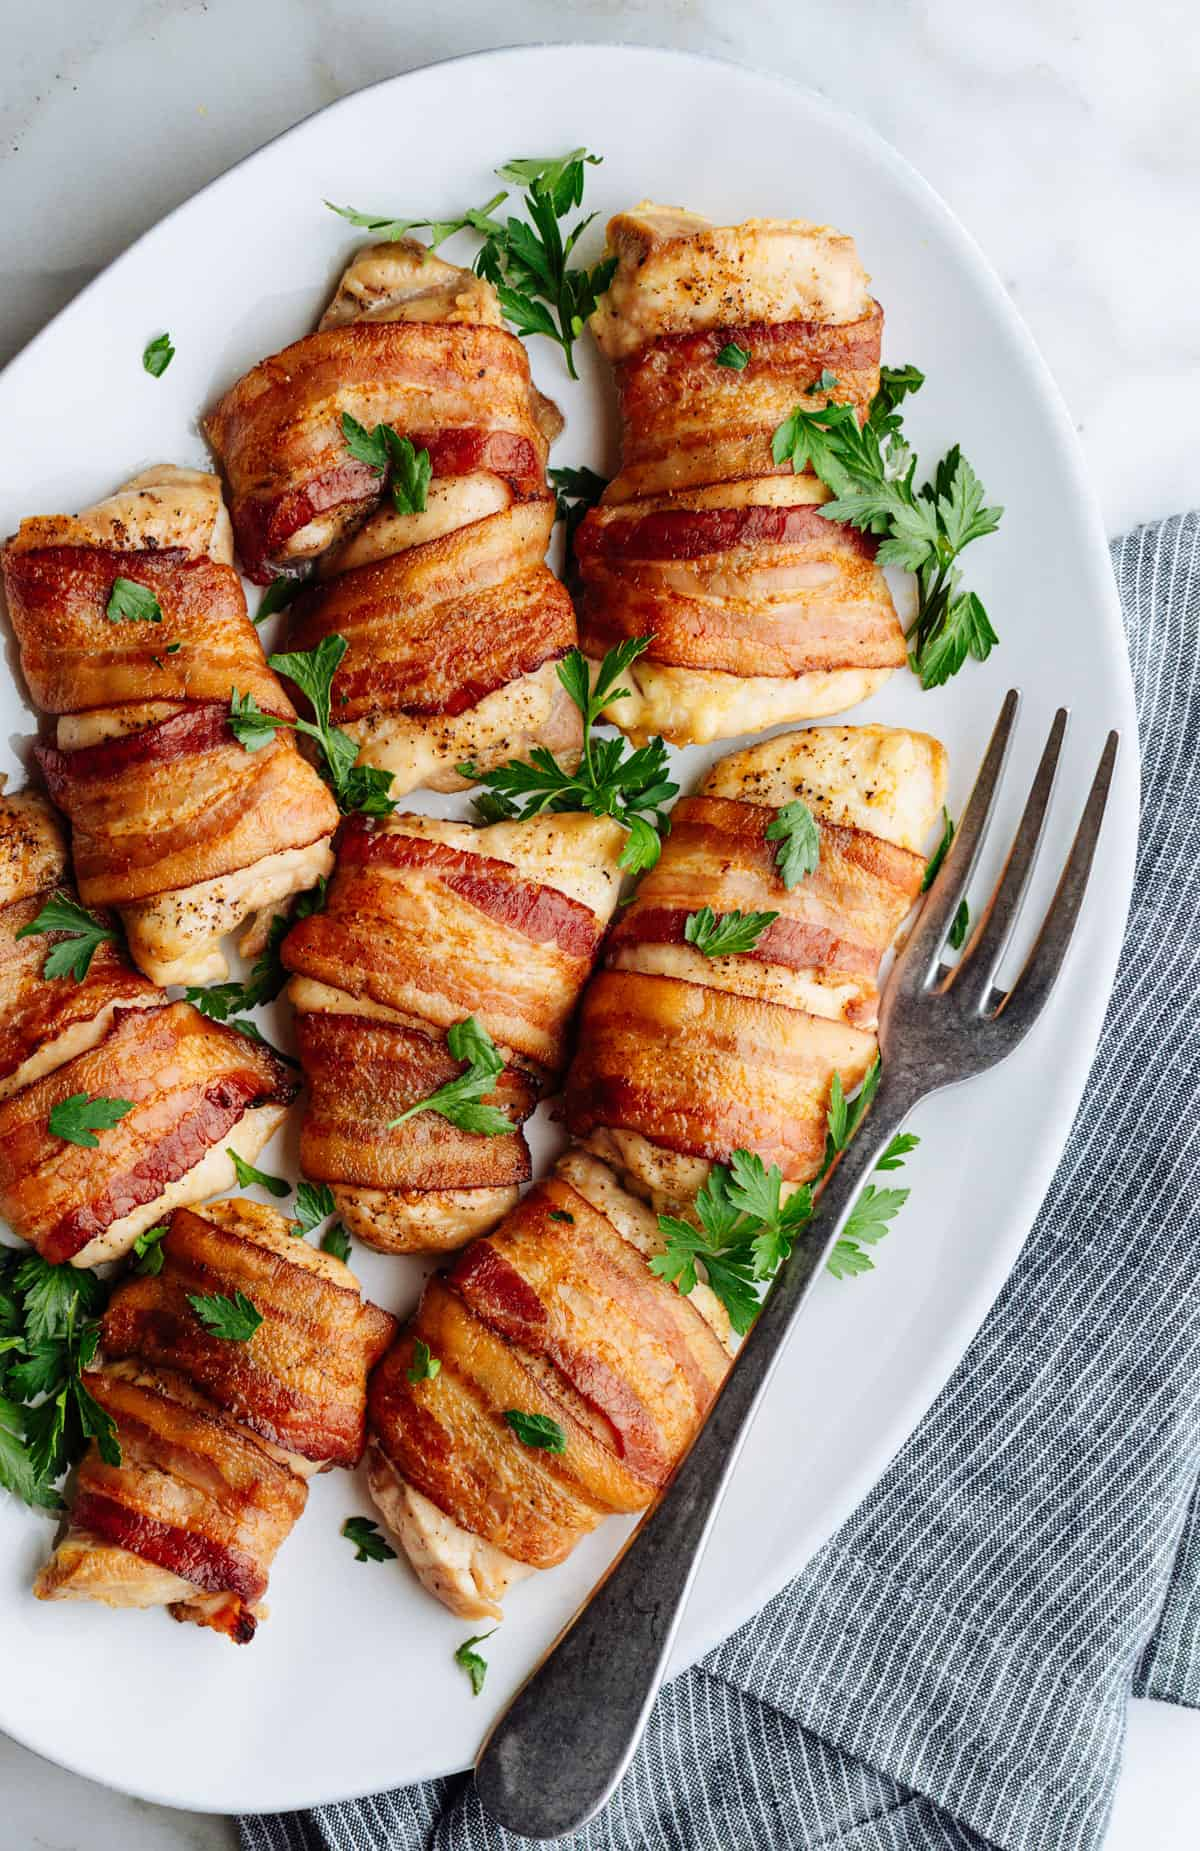 Bacon Wrapped Chicken Thighs served on a white oval platter photographed from above.